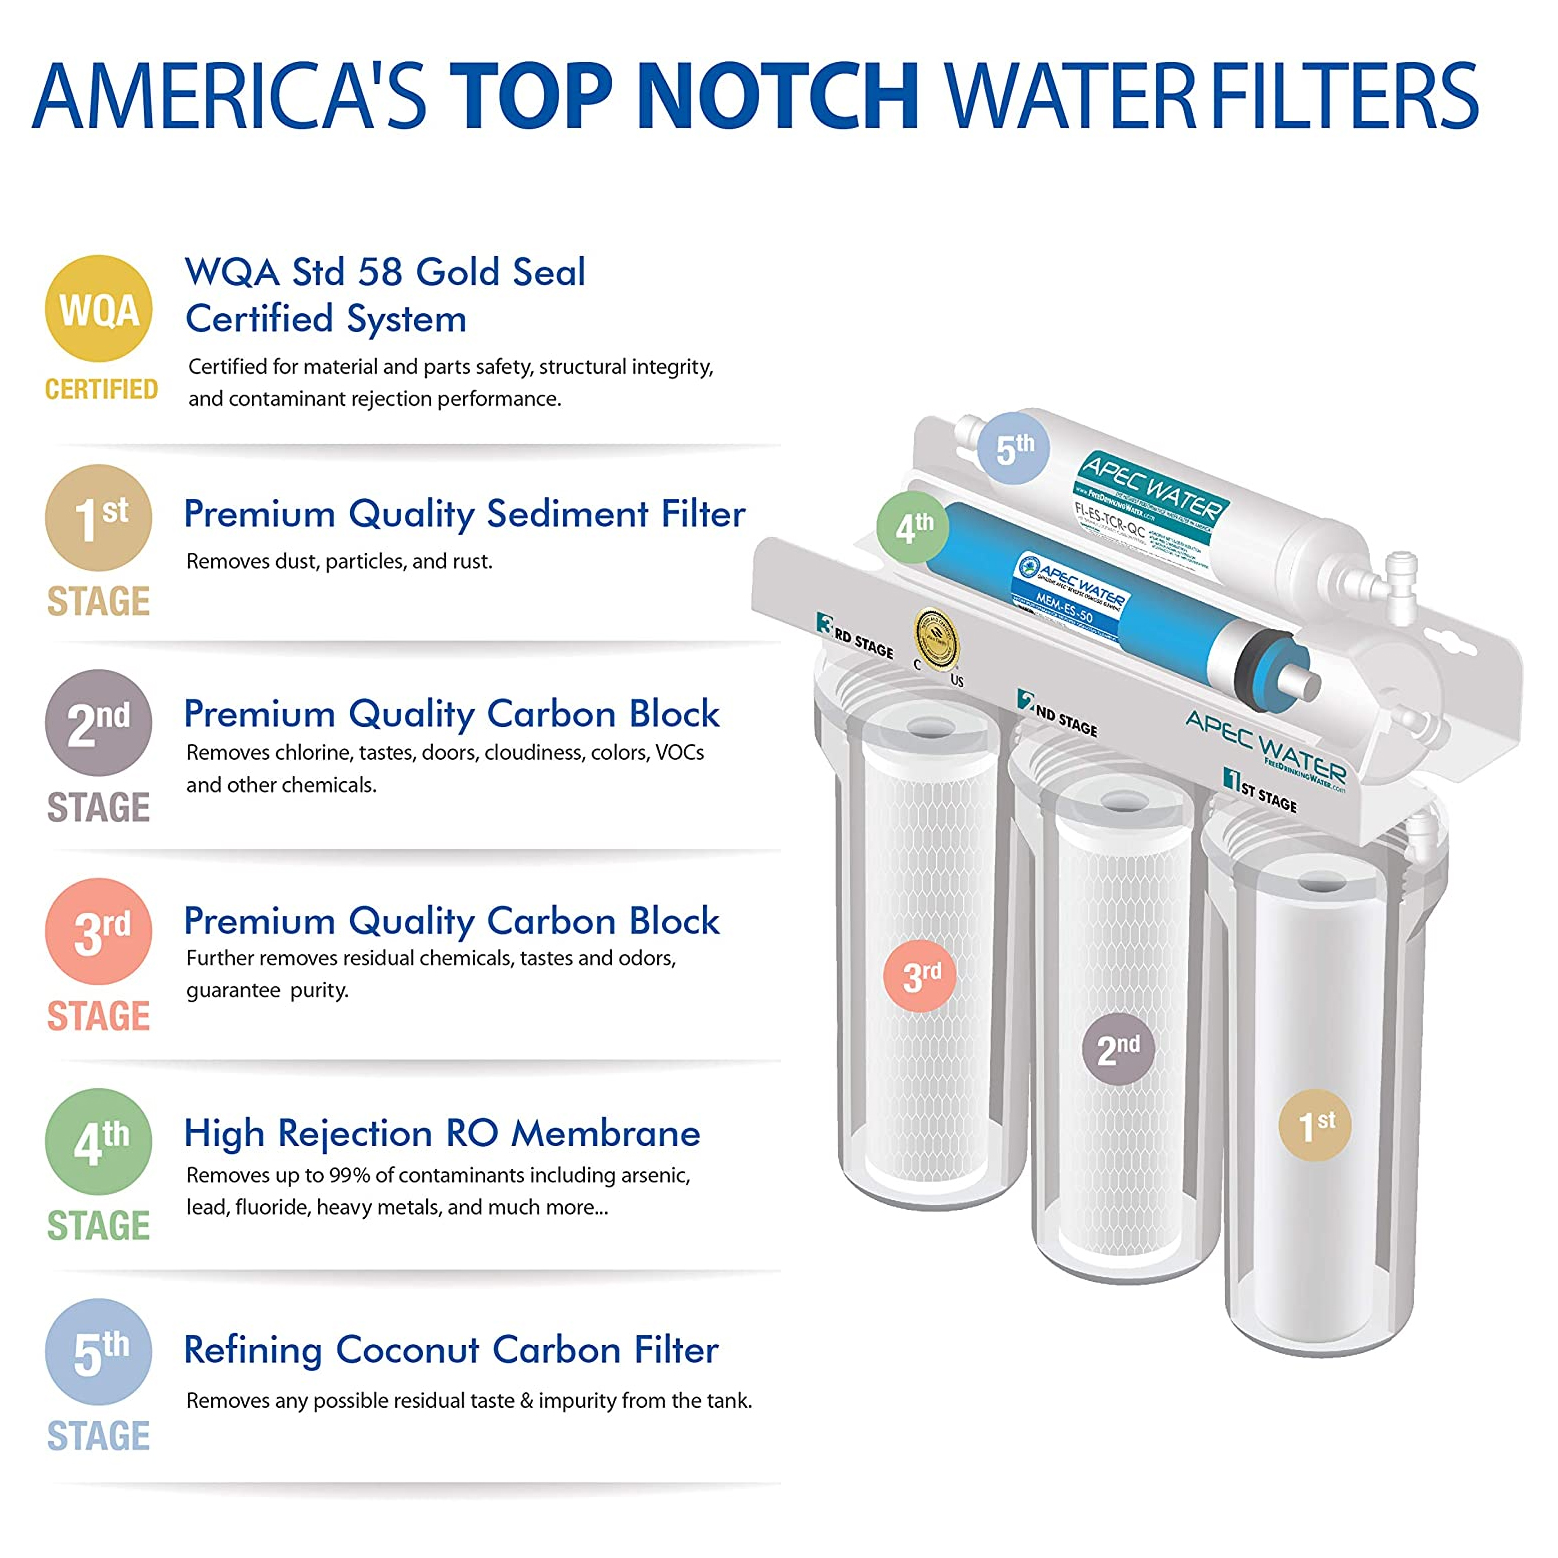 USA water filter APEC infographic